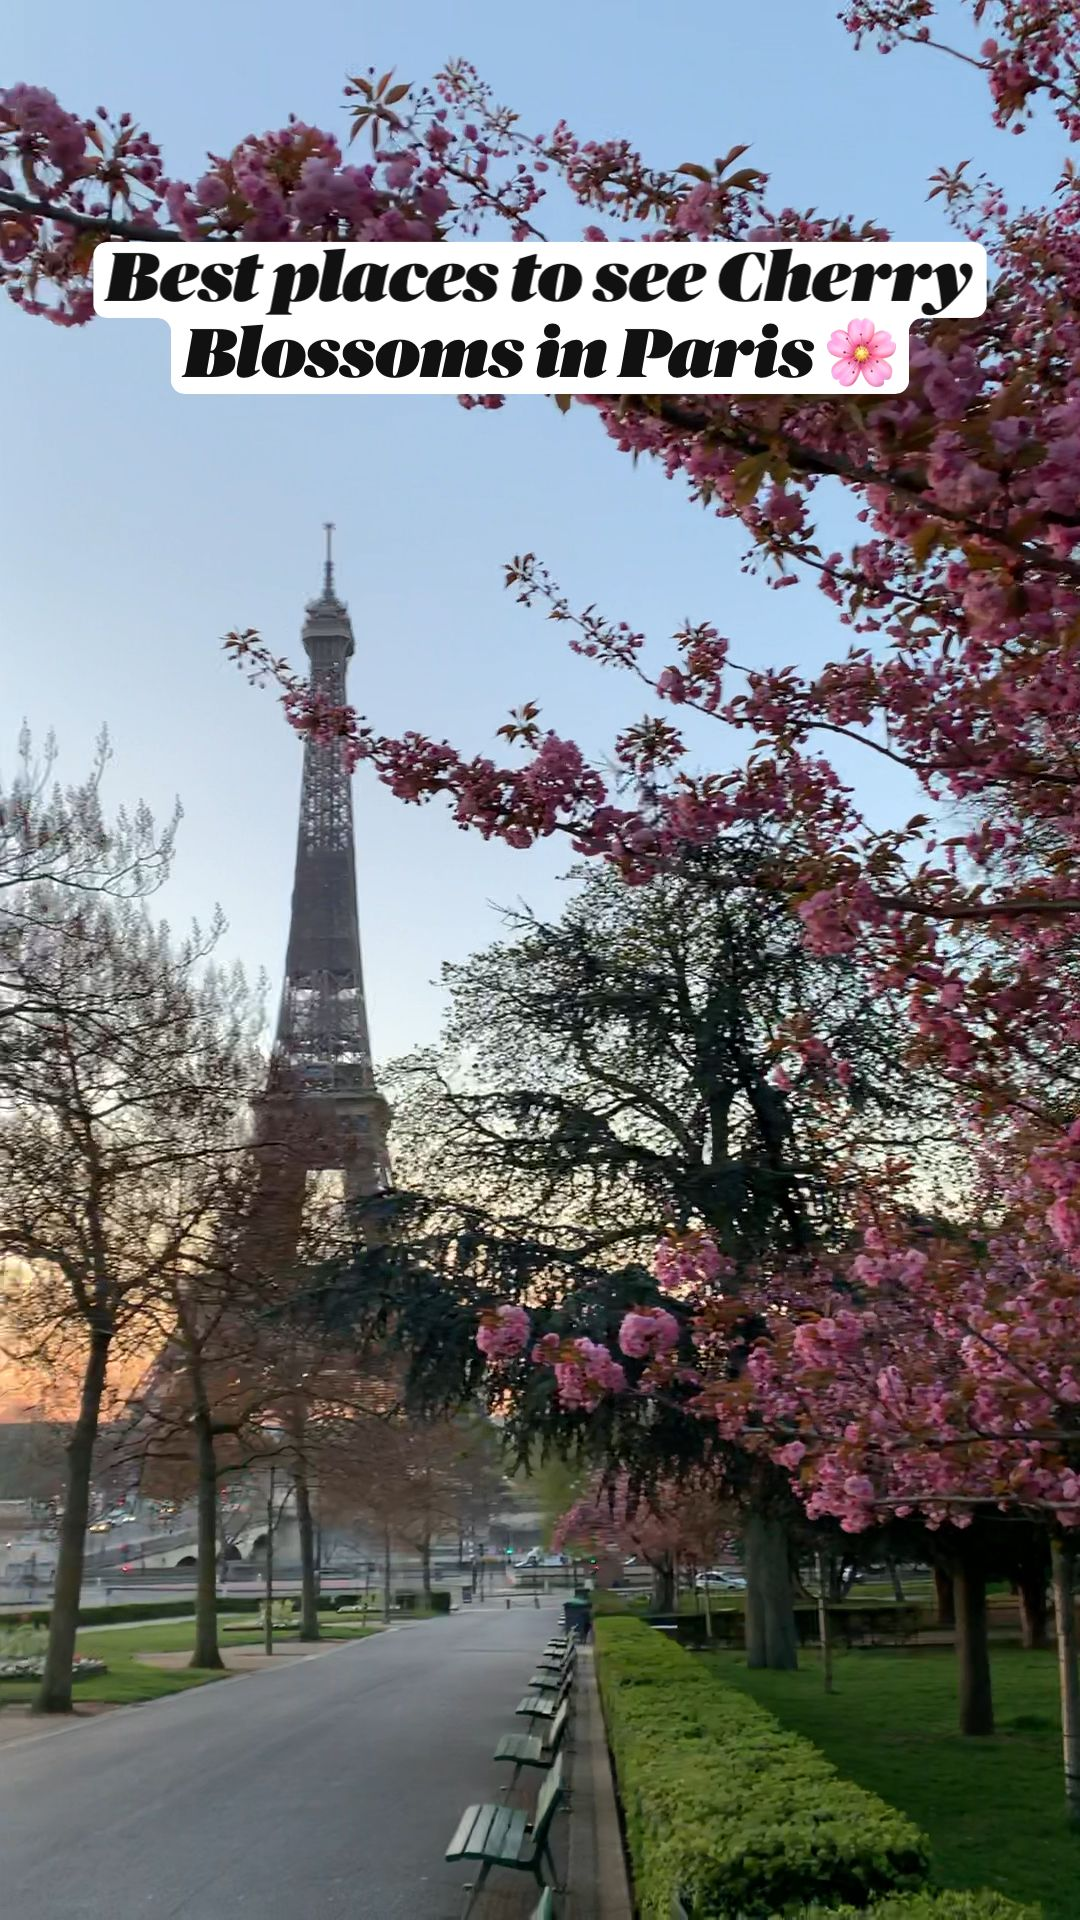 Best places to see Cherry Blossoms in Paris 🌸